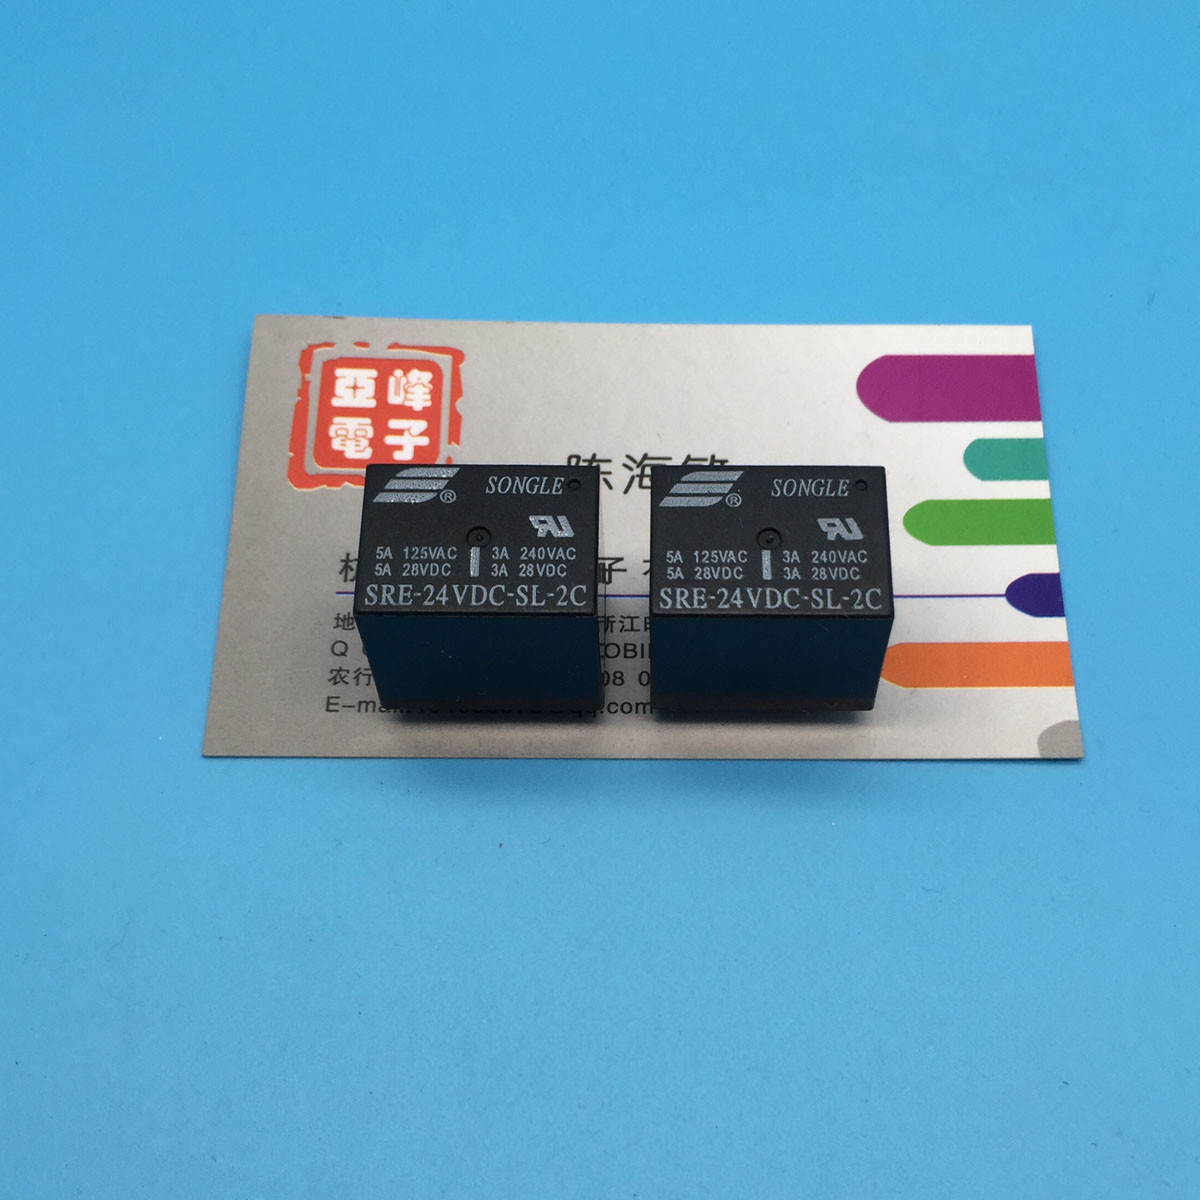 Song Le relay SRE-24VDC-SL-2C two group switch 8 pin 3A240VAC 4137(China (Mainland))